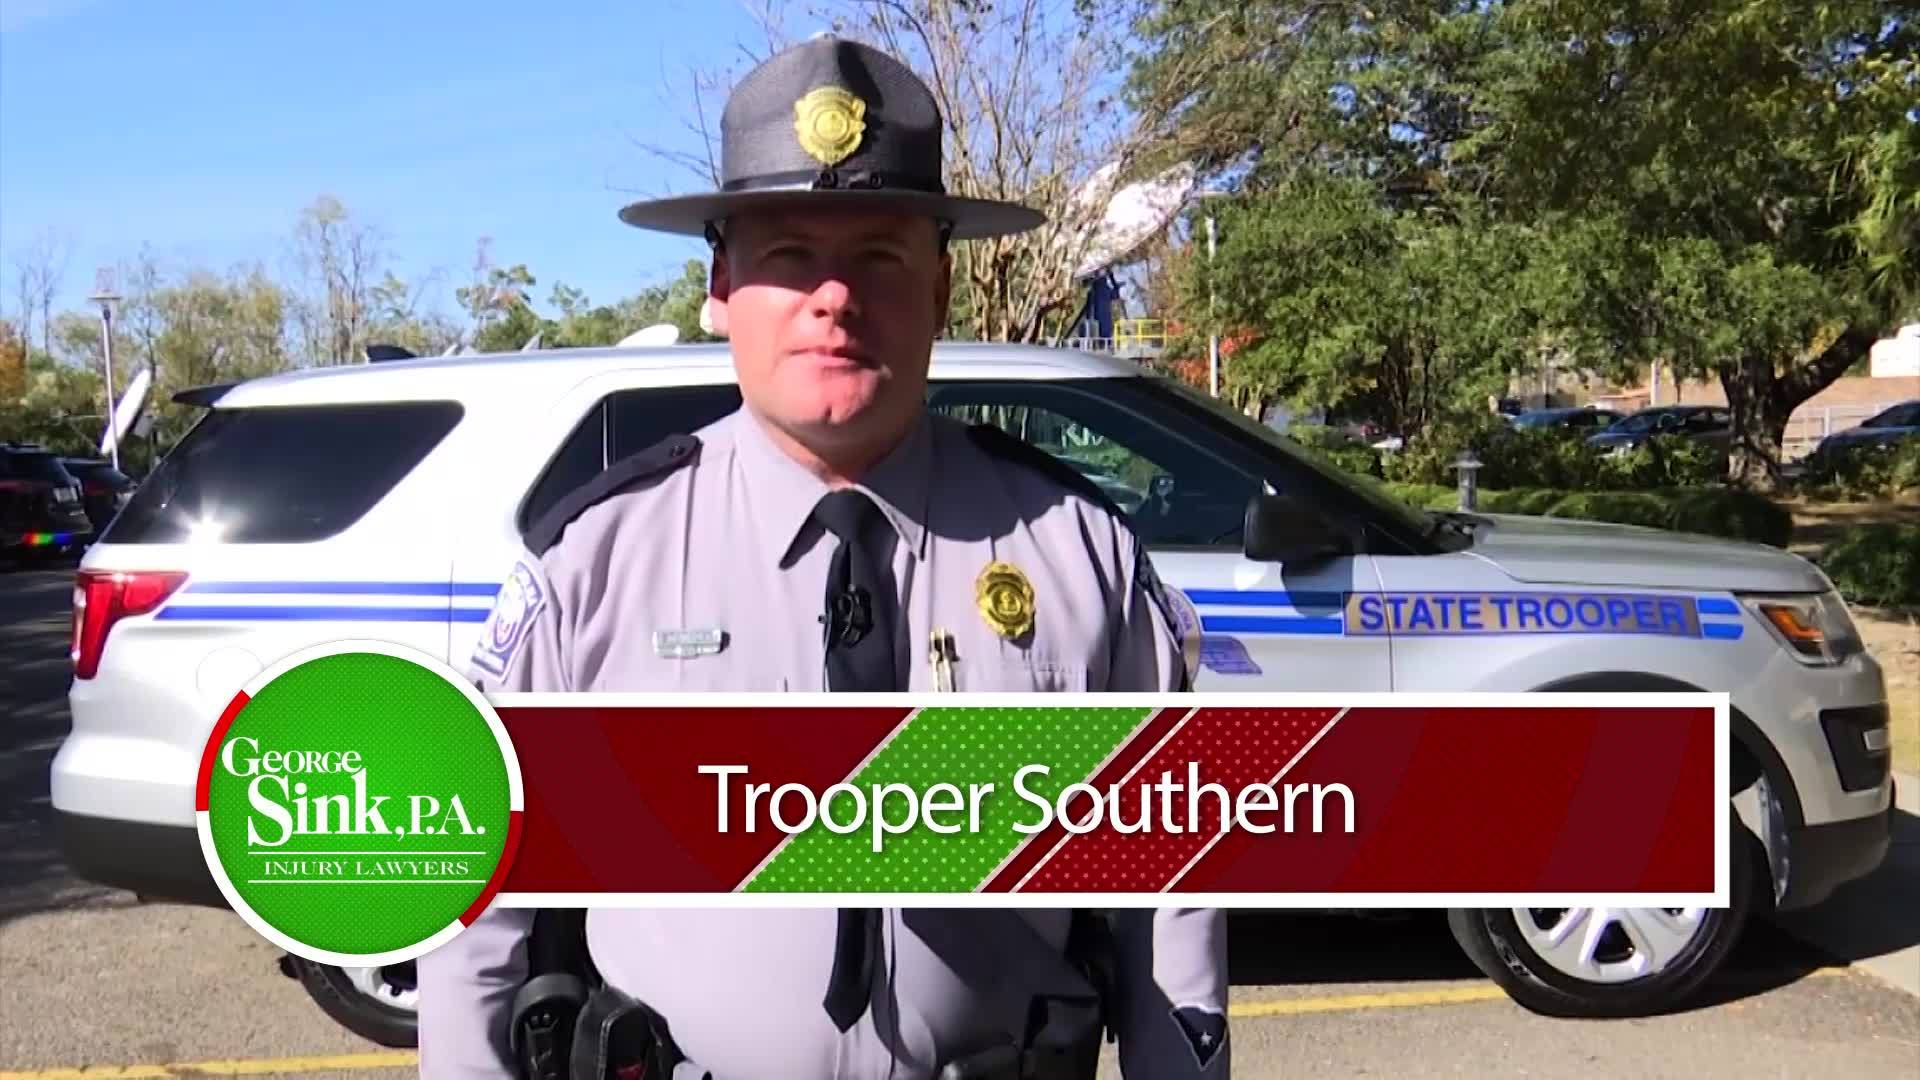 HH: Trooper Southern